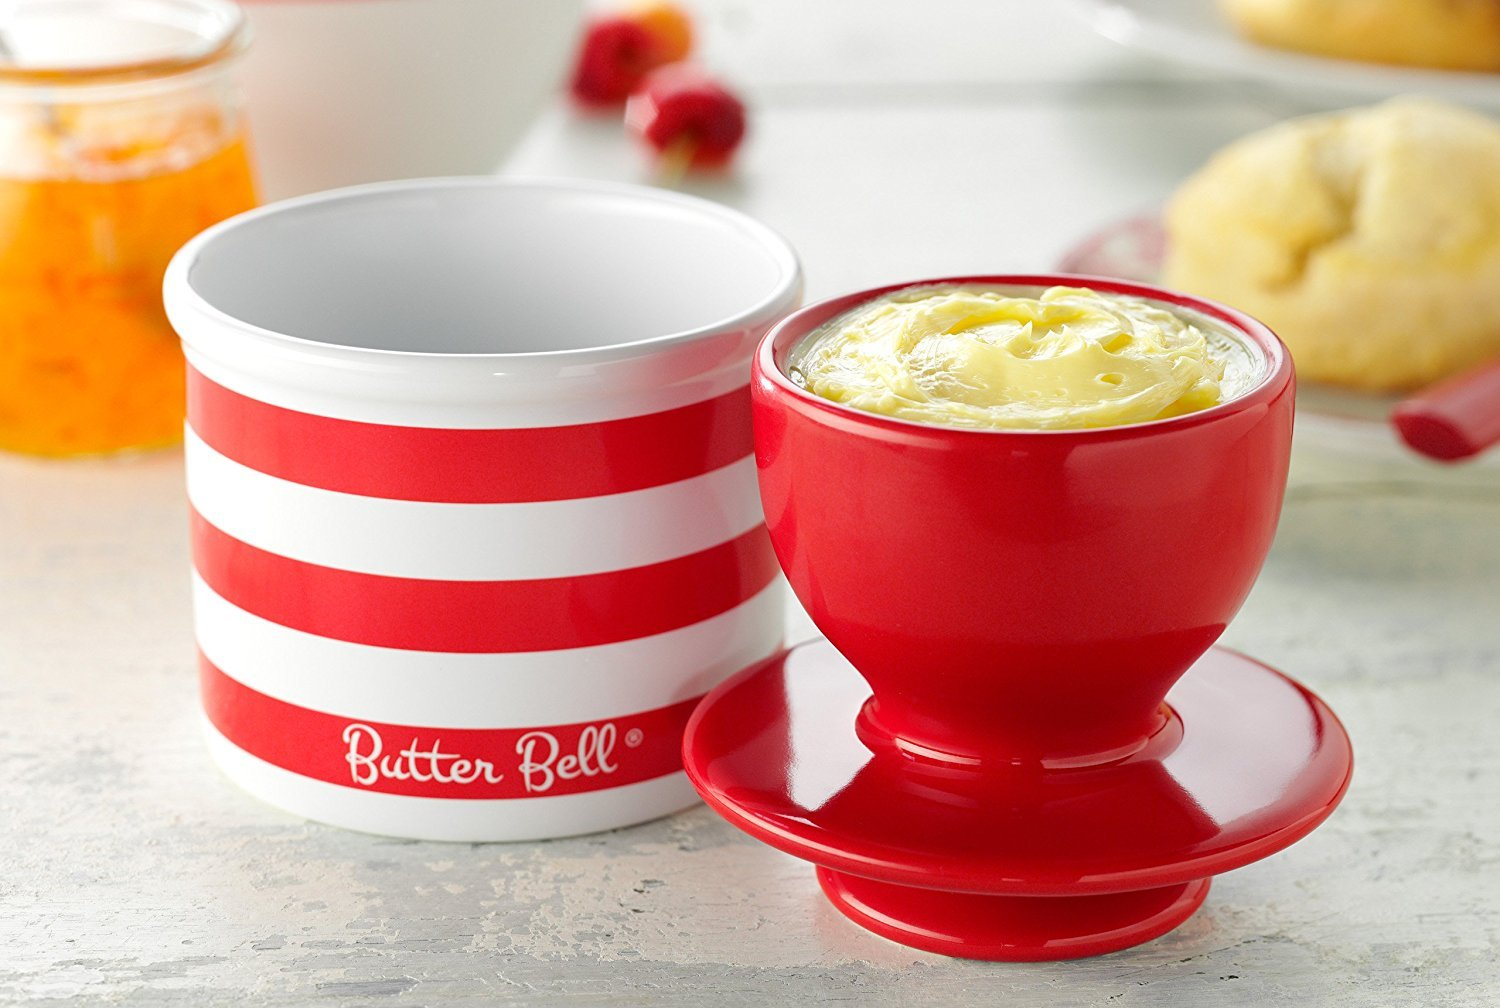 Striped Collection The Original Butter Bell Crock by L Candy Apple Red Tremain